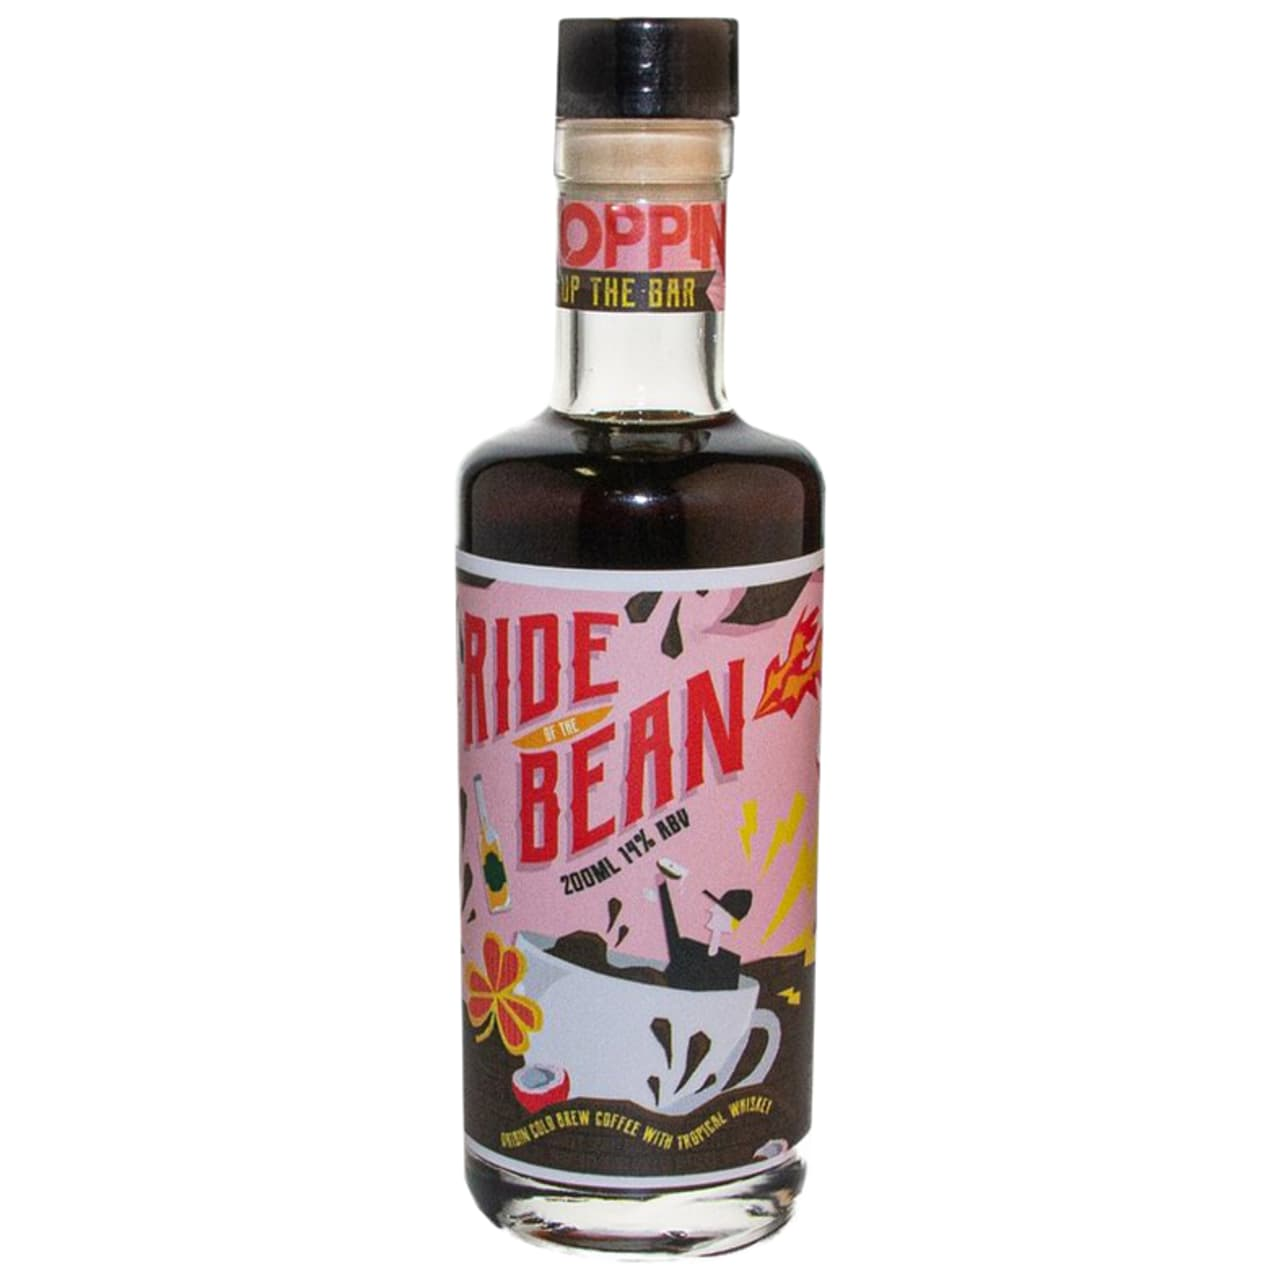 Product Image - PUTB Ride of the Bean